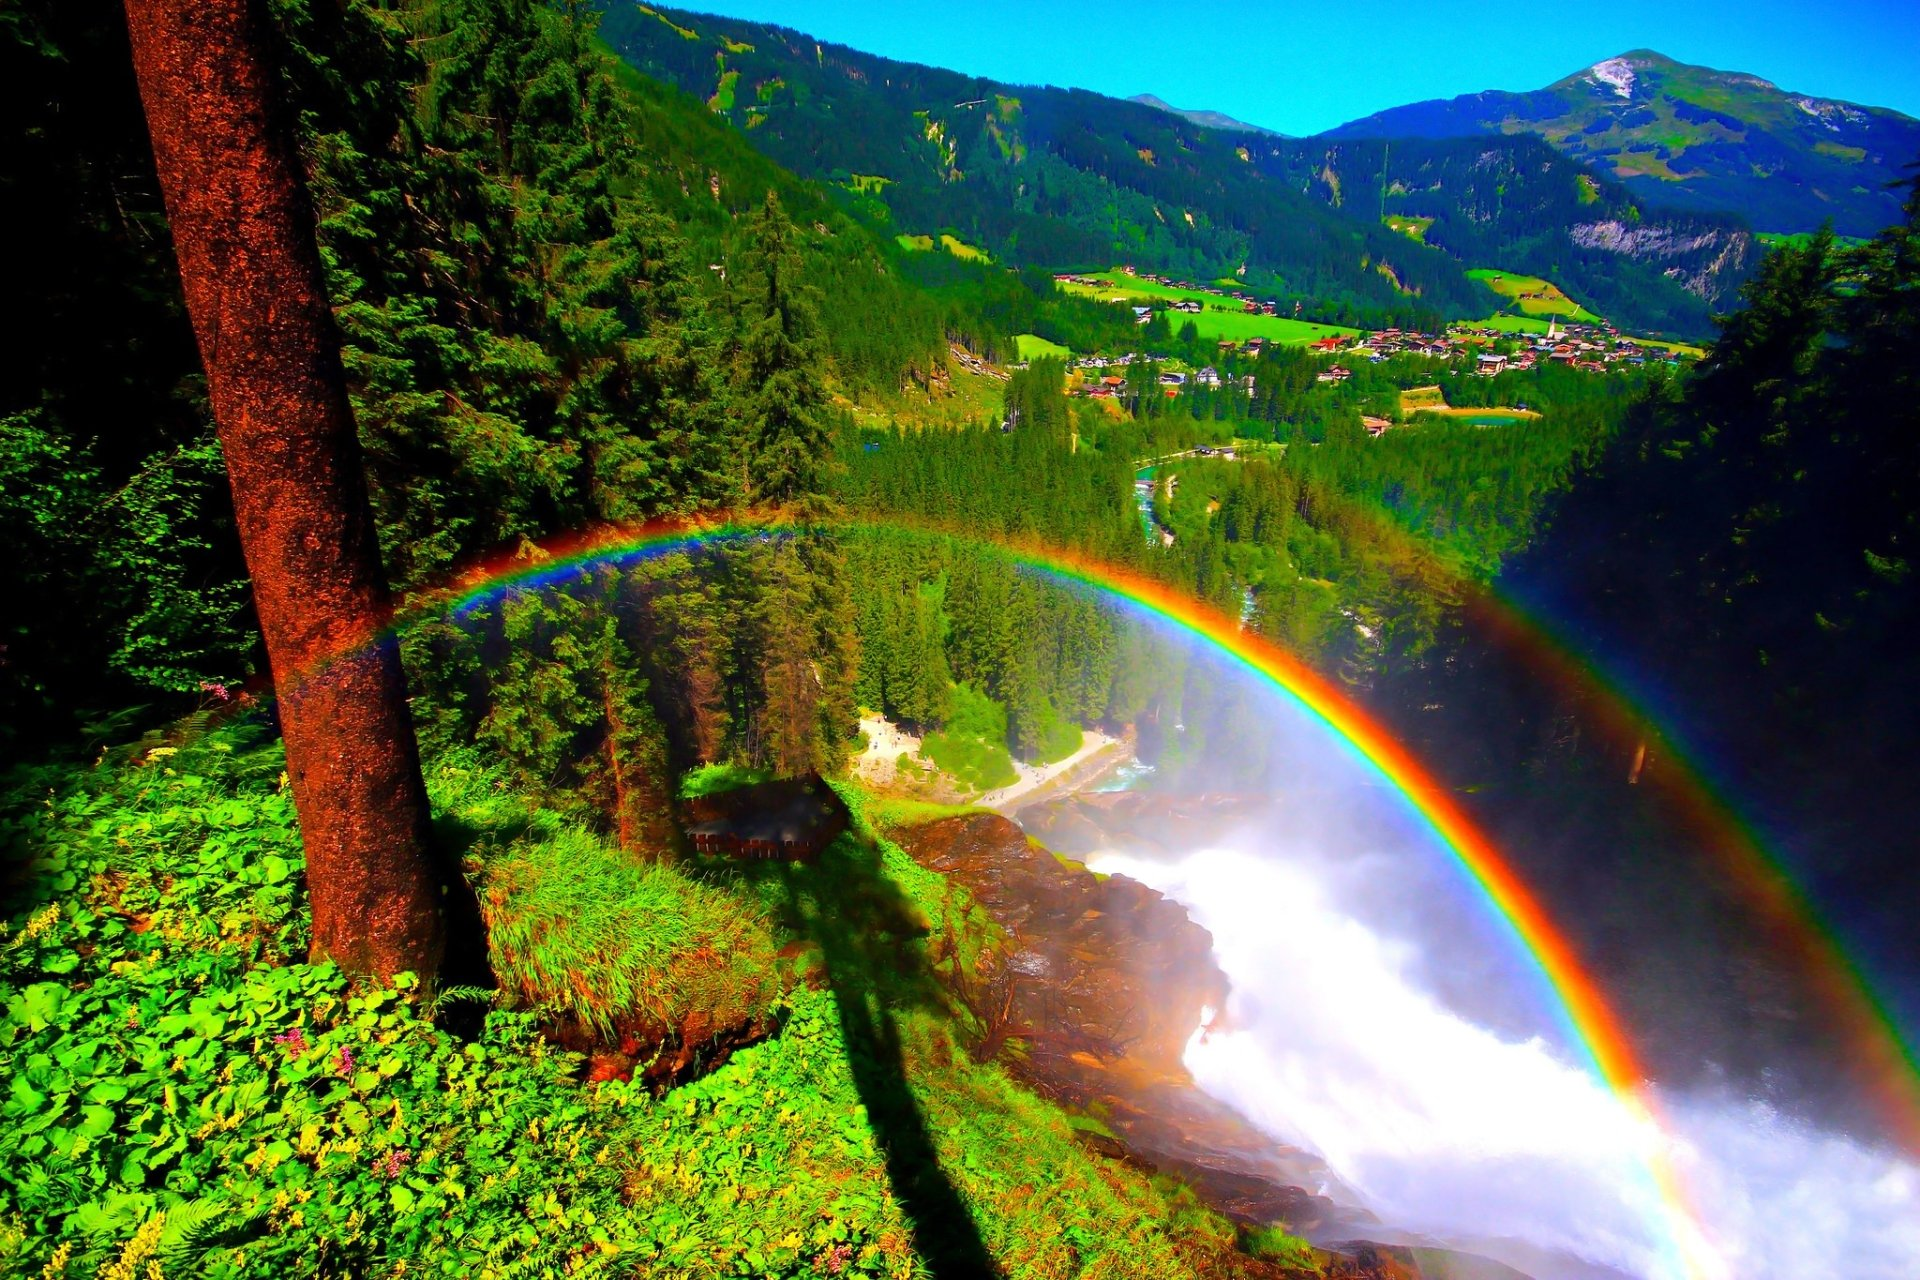 3d Wallpaper Widescreen Waterfalls Rainbow And View Of Mountain Village Hd Wallpaper